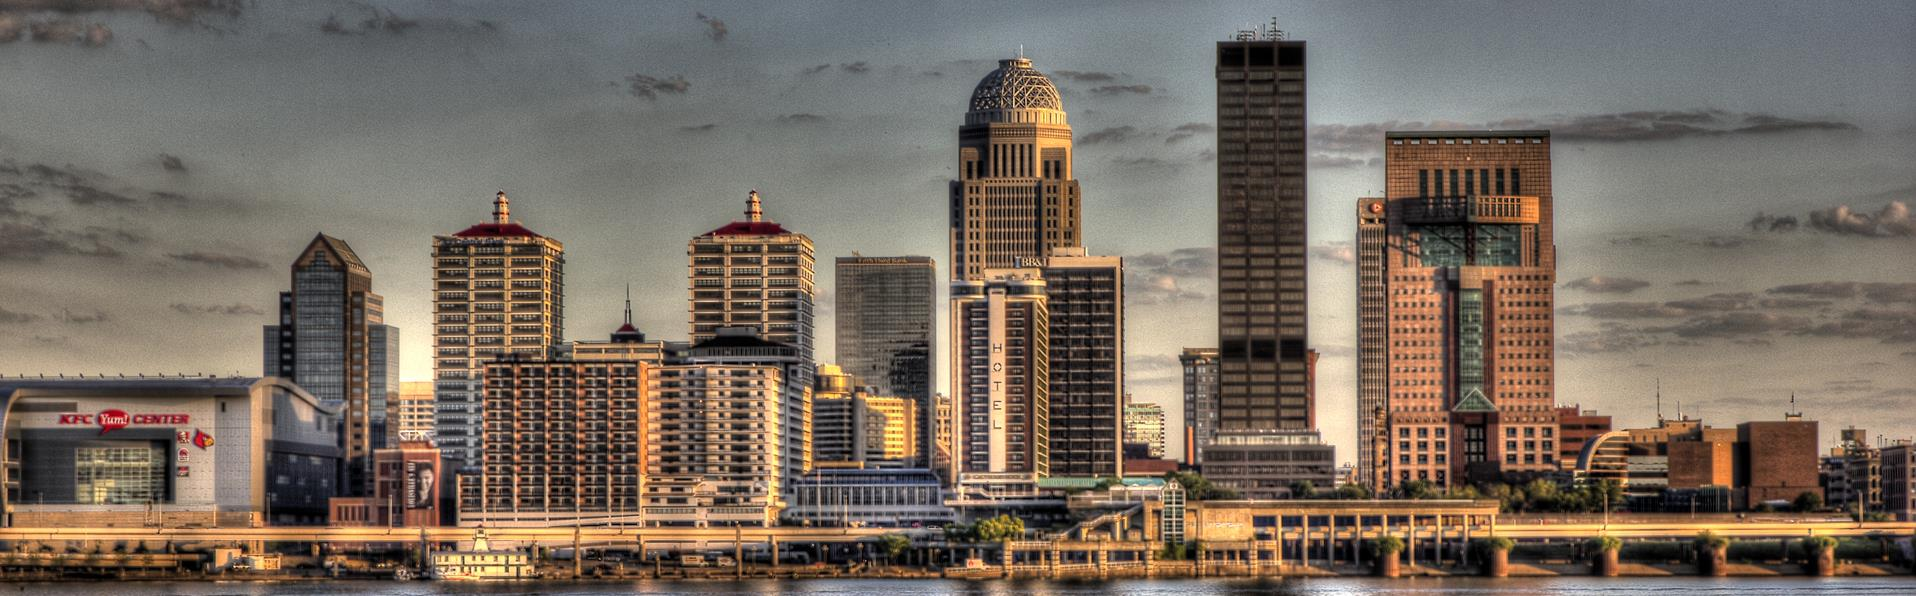 Louisville Ky Used Cars Buy Here Pay Here Lot